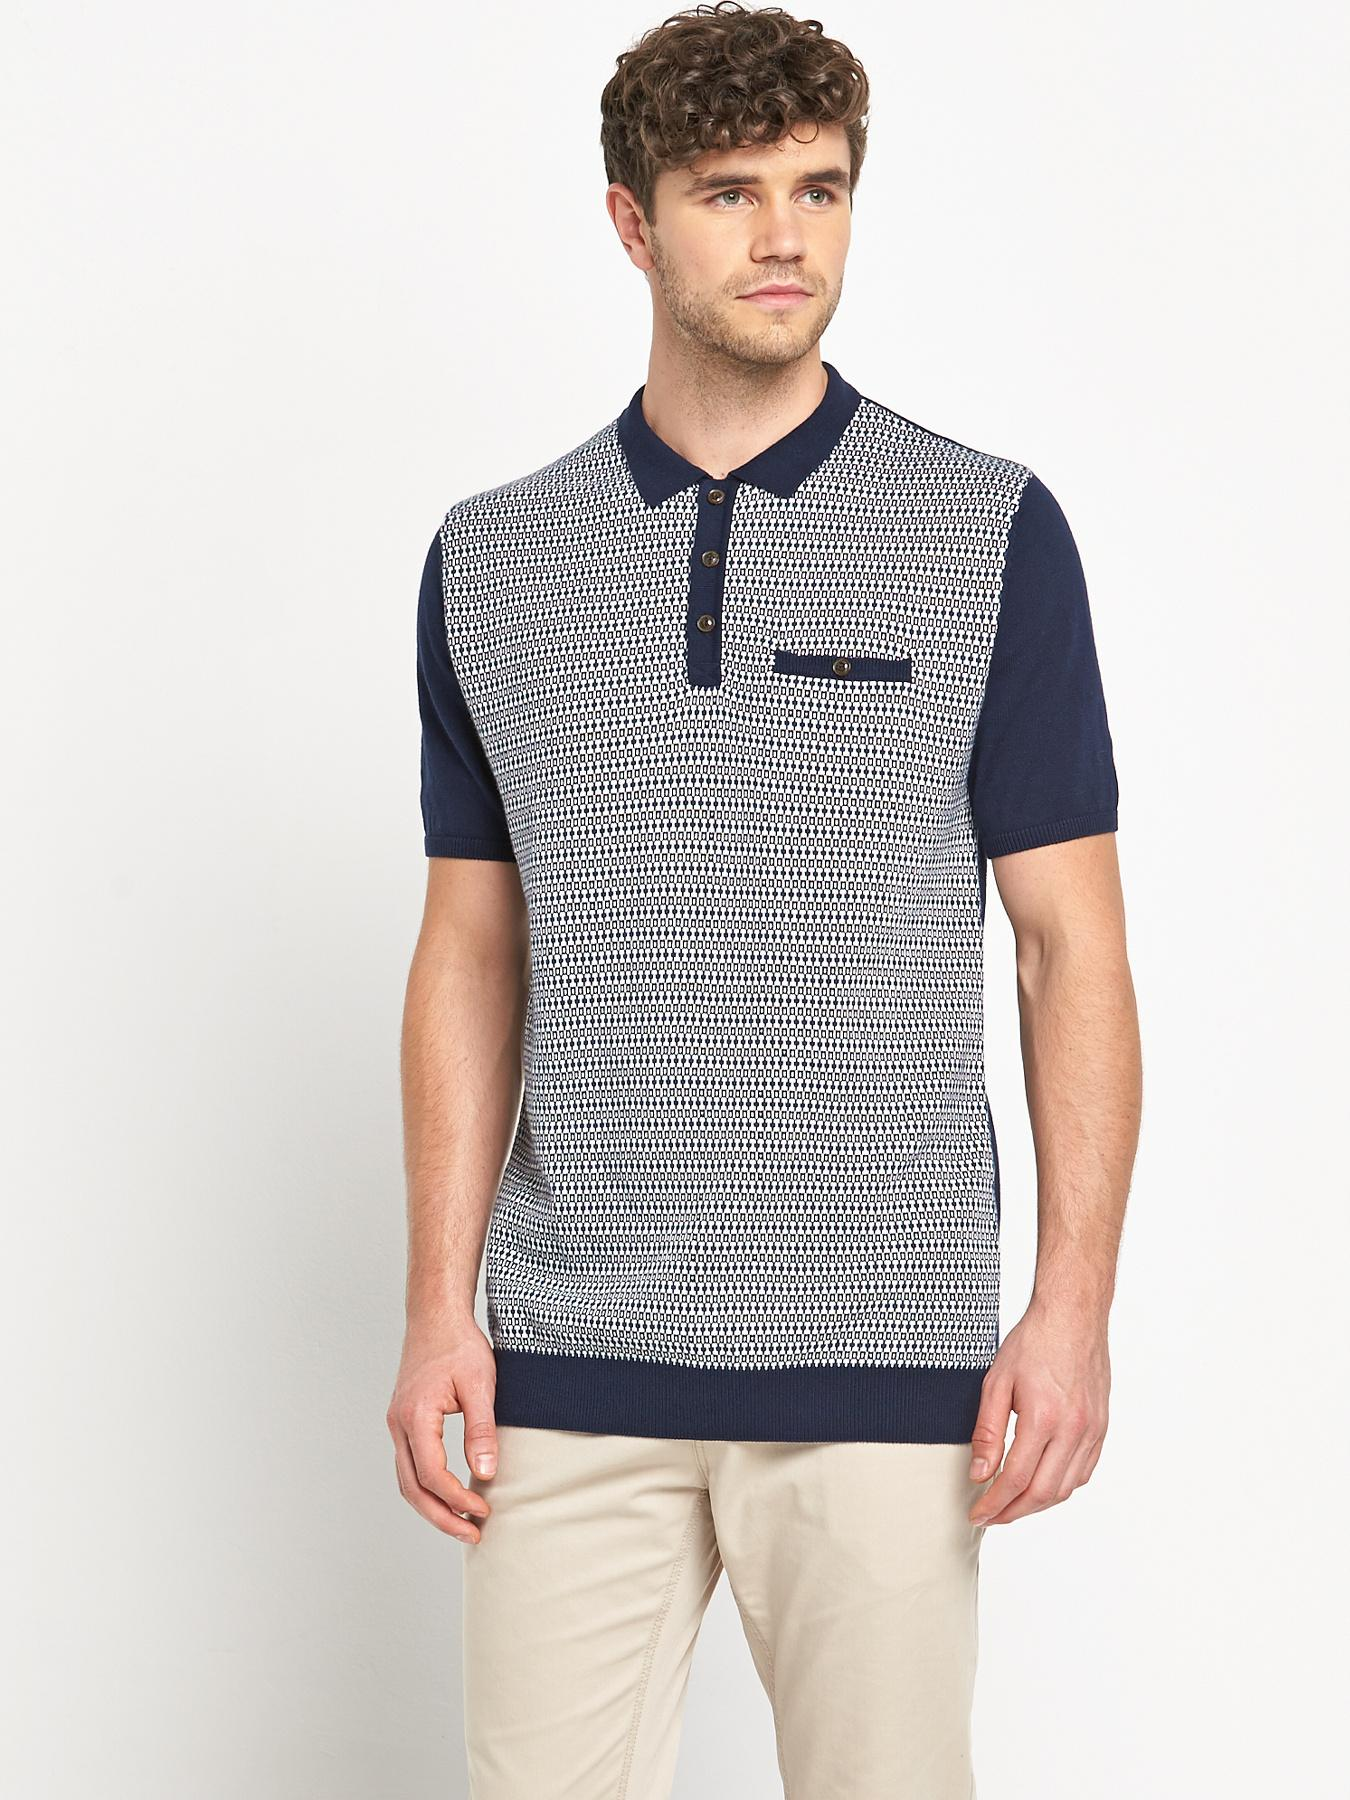 Goodsouls Mens Short Sleeve Jacquard Polo Shirt - Navy, Navy